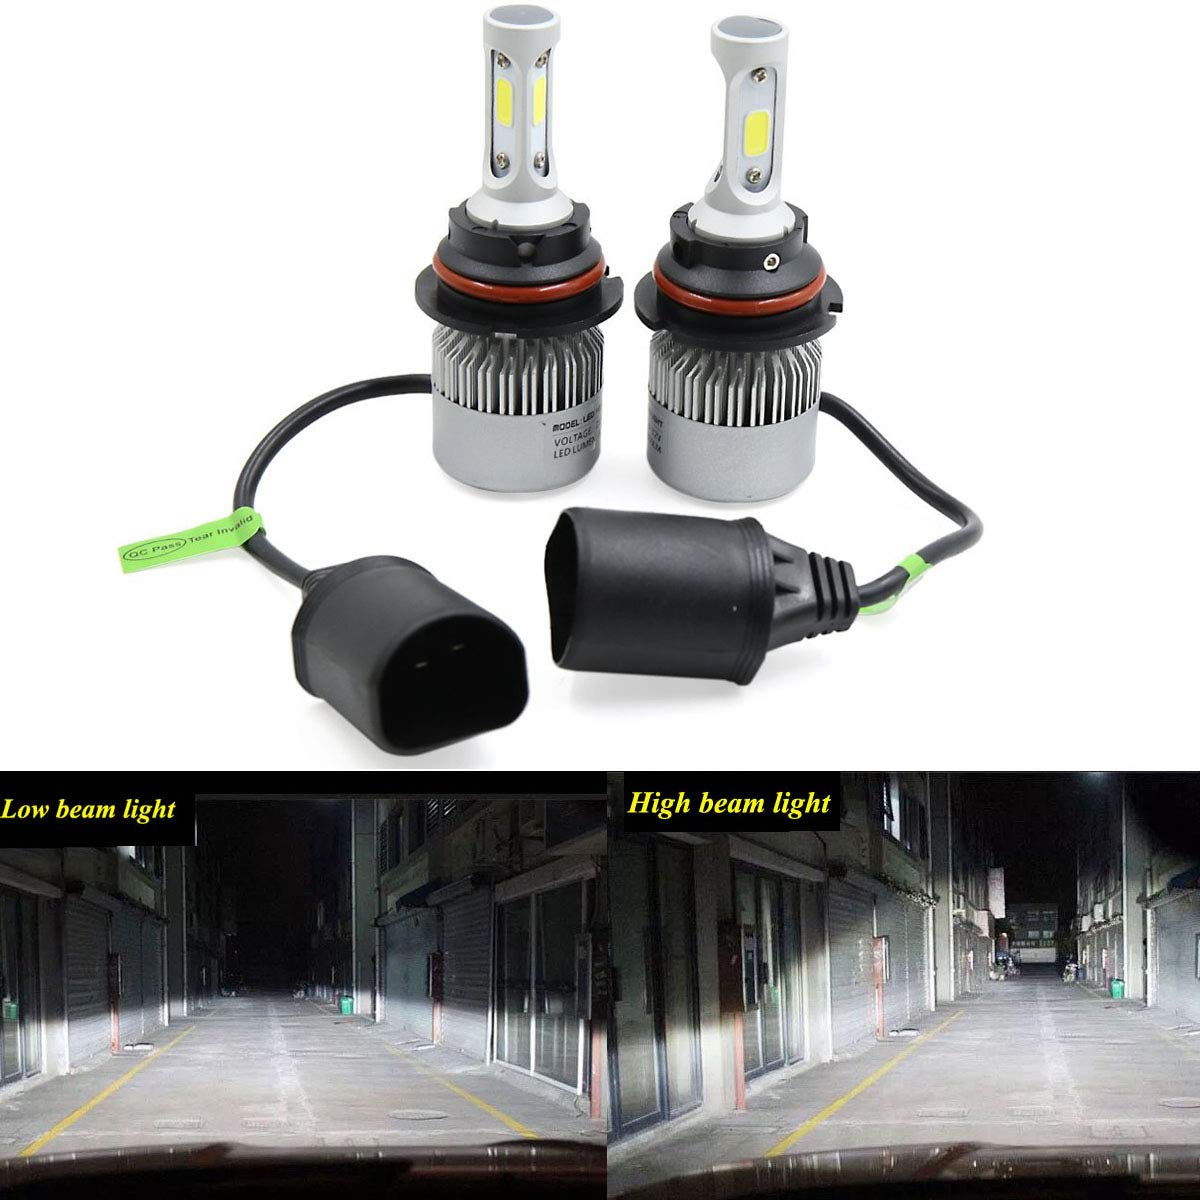 2PCS LED Headlight Low Beam Light High Beam Light Fog Light All-in-One Conversion Kit 9007 Base 72W 6500K 8000Lm Xenon White COB Chip Universal Fit Dodge Ford Plymouth Mercury Nissan Subura